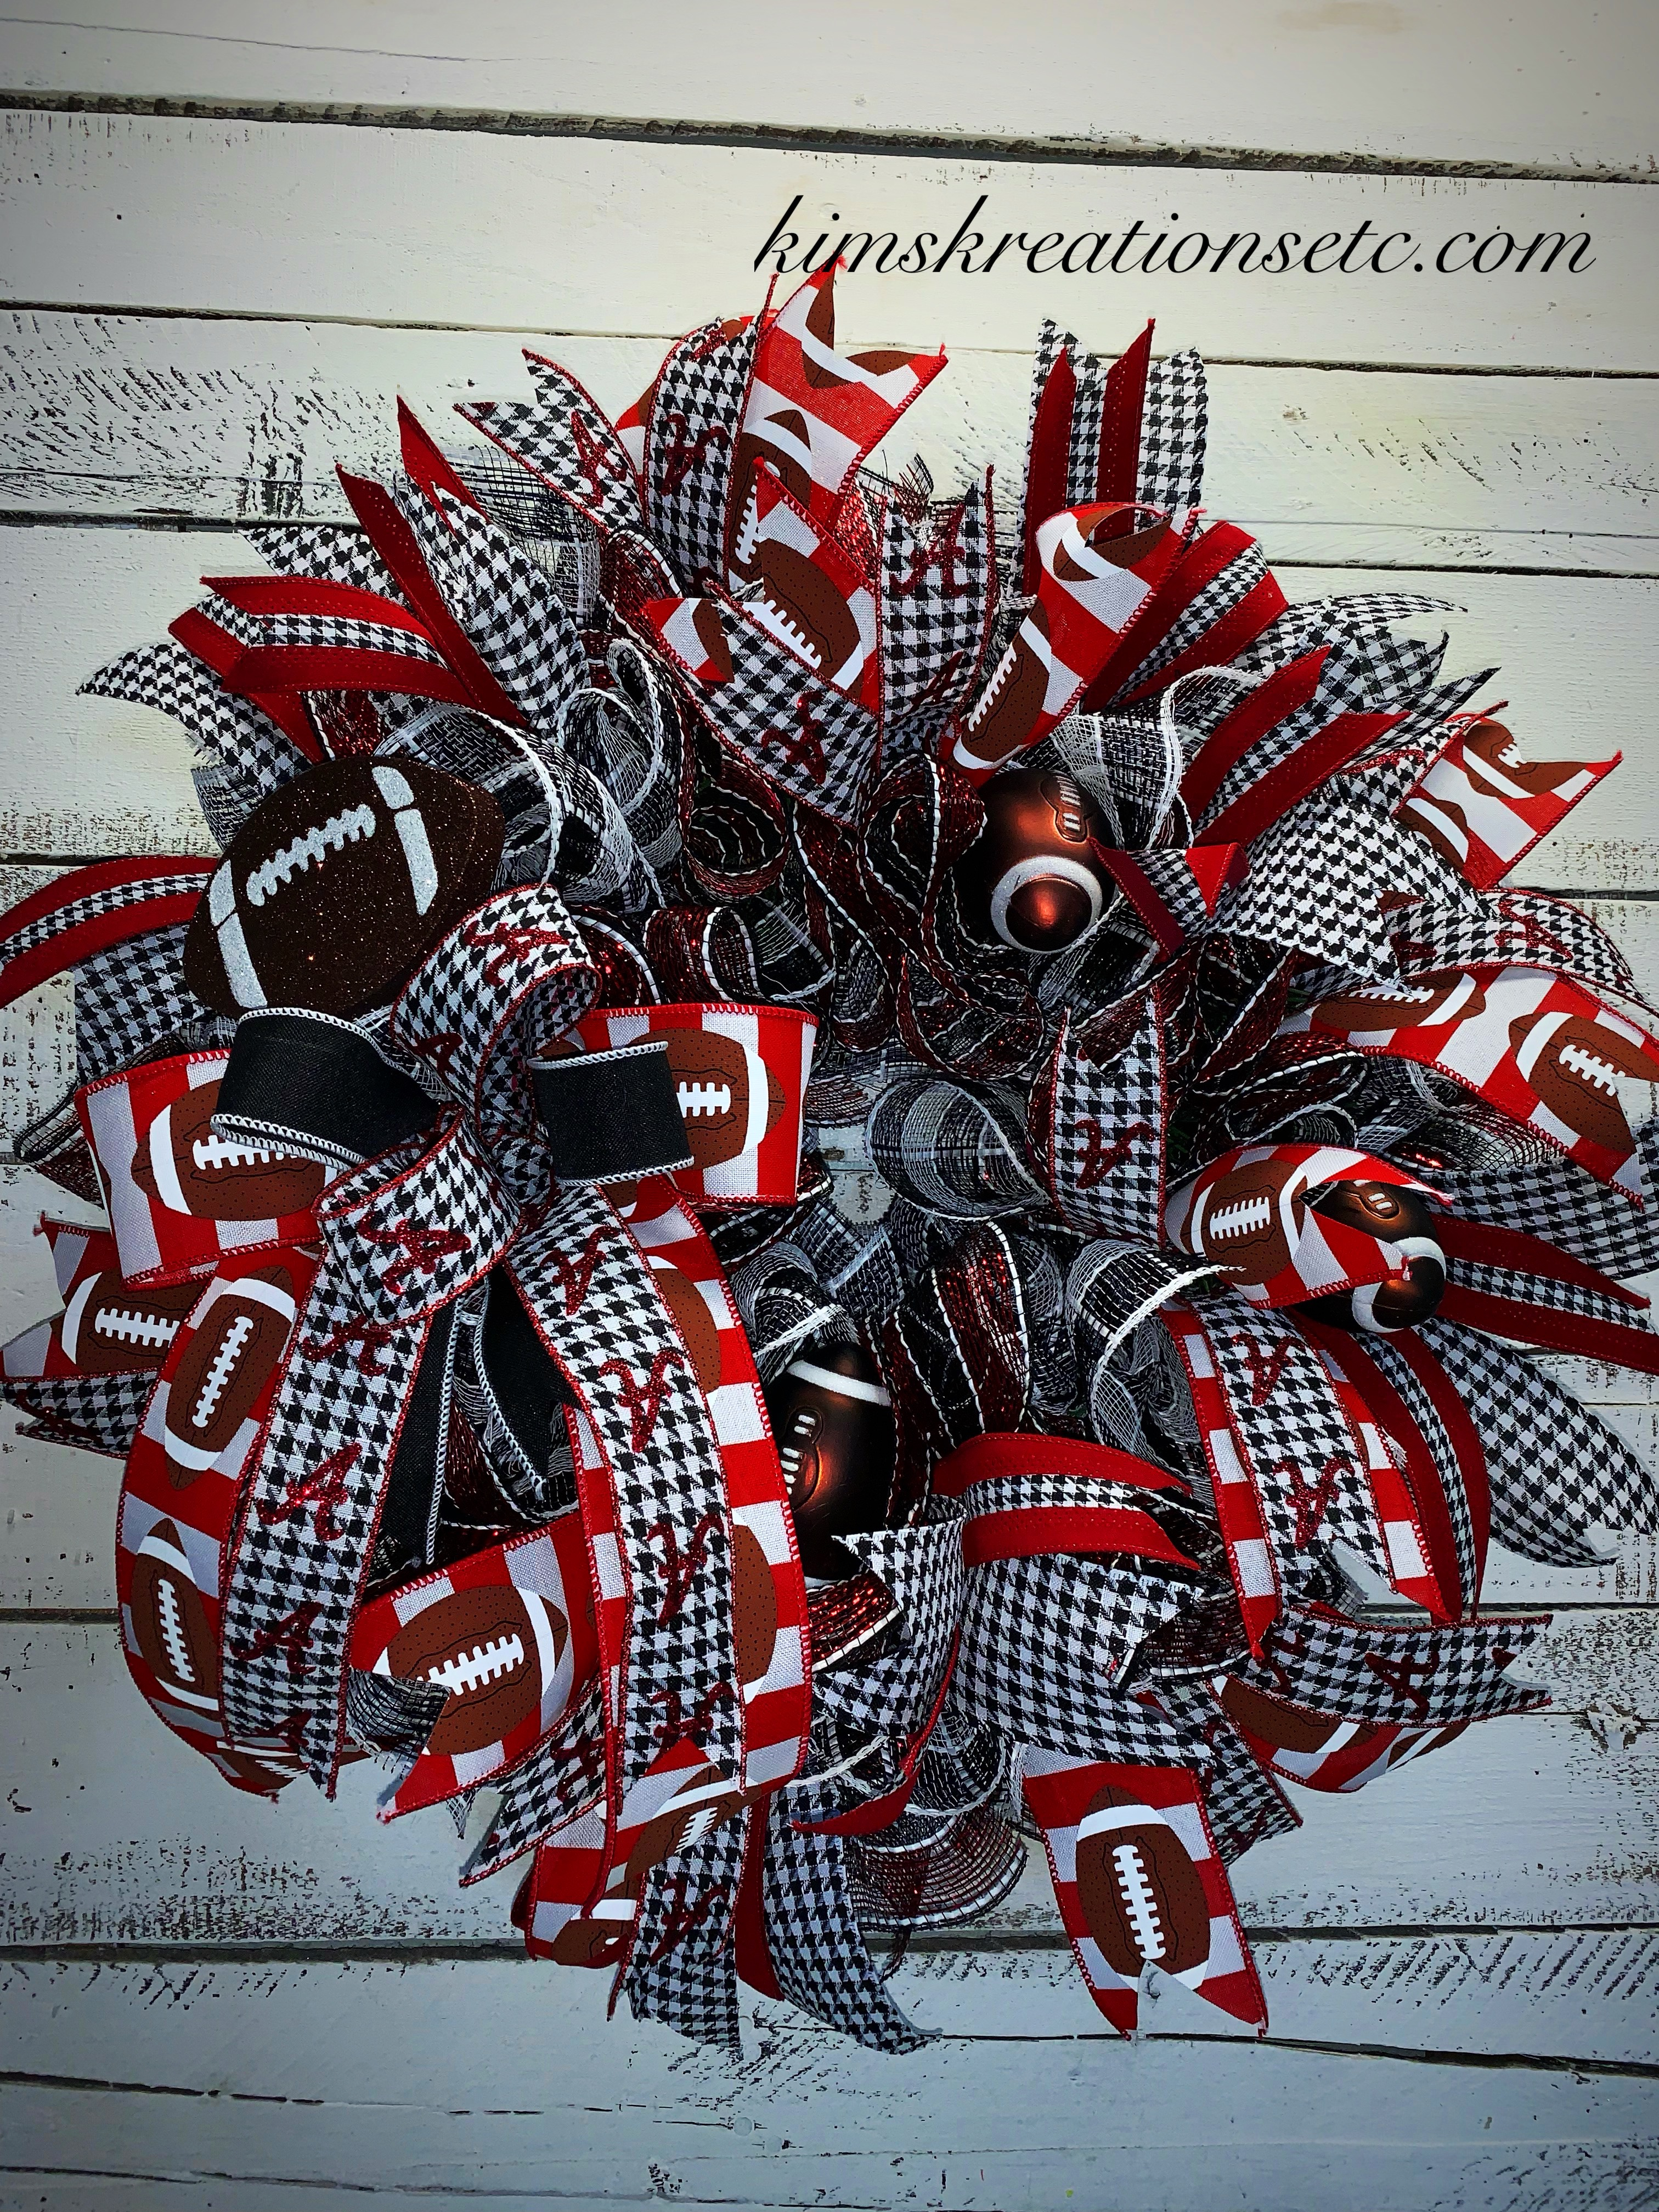 Sports Wreath Free Shipping Football Wreath College Football Wreath Crimson Red And Black Houndstooth College Football Door Wreath Sports Wreath For Front Door Home Decor Wreaths For Sale Kim S Kreations Etc